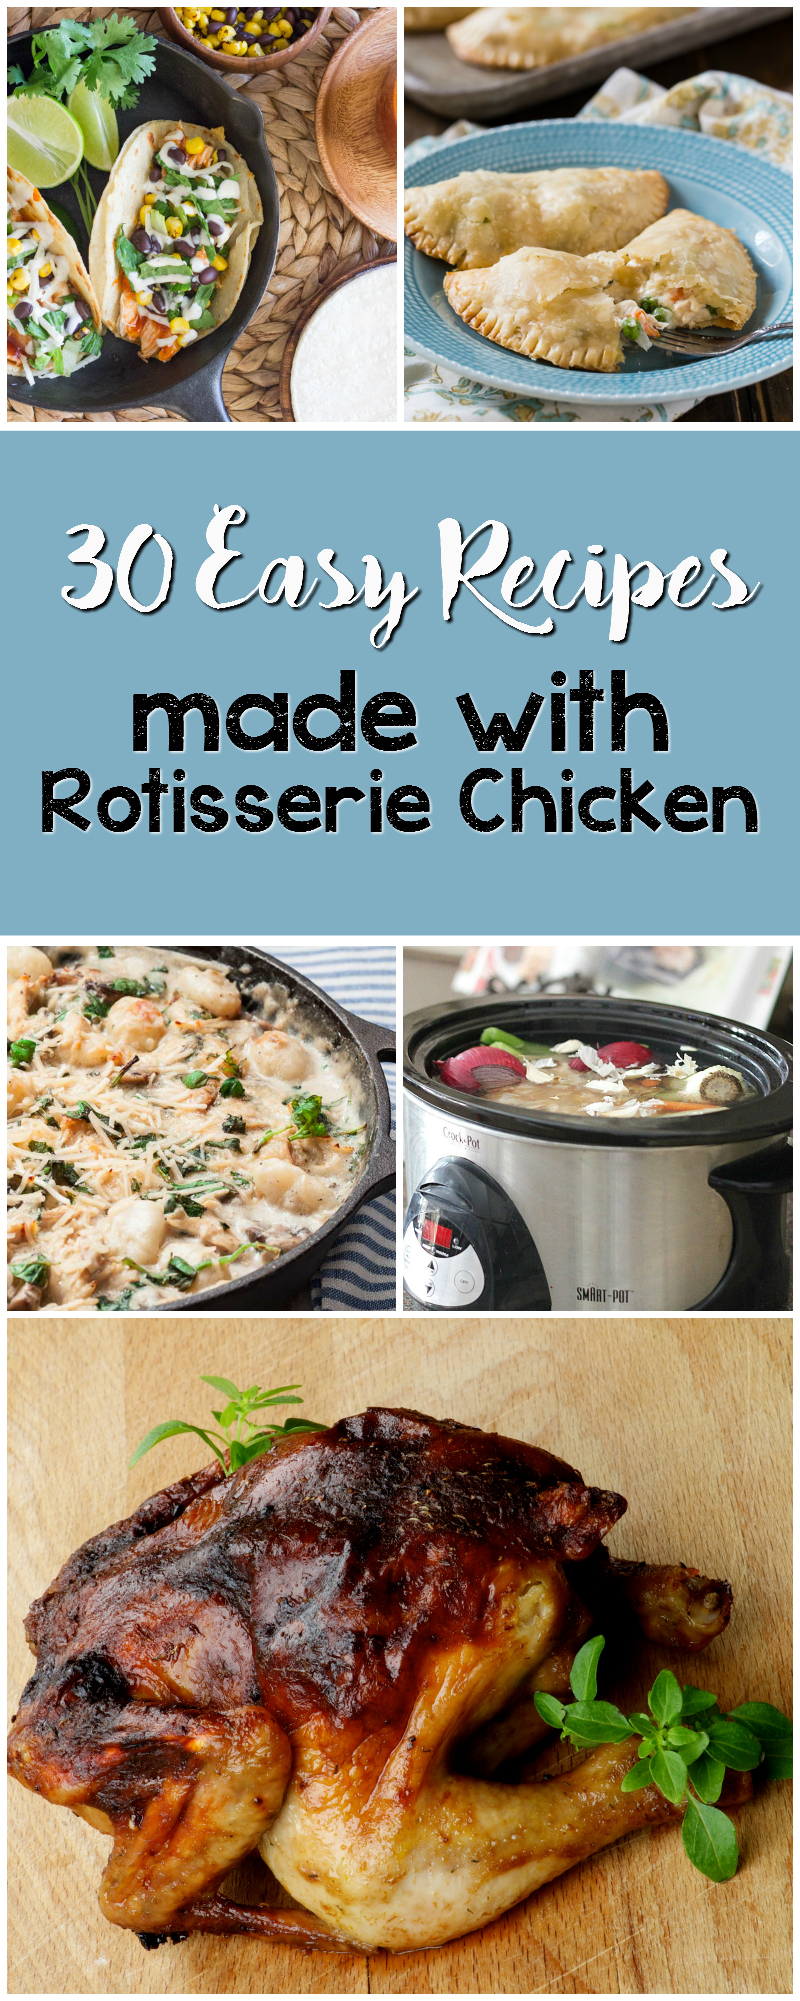 30 Easy Nail Designs For Beginners: 30 Easy Recipes Made With Rotisserie Chicken